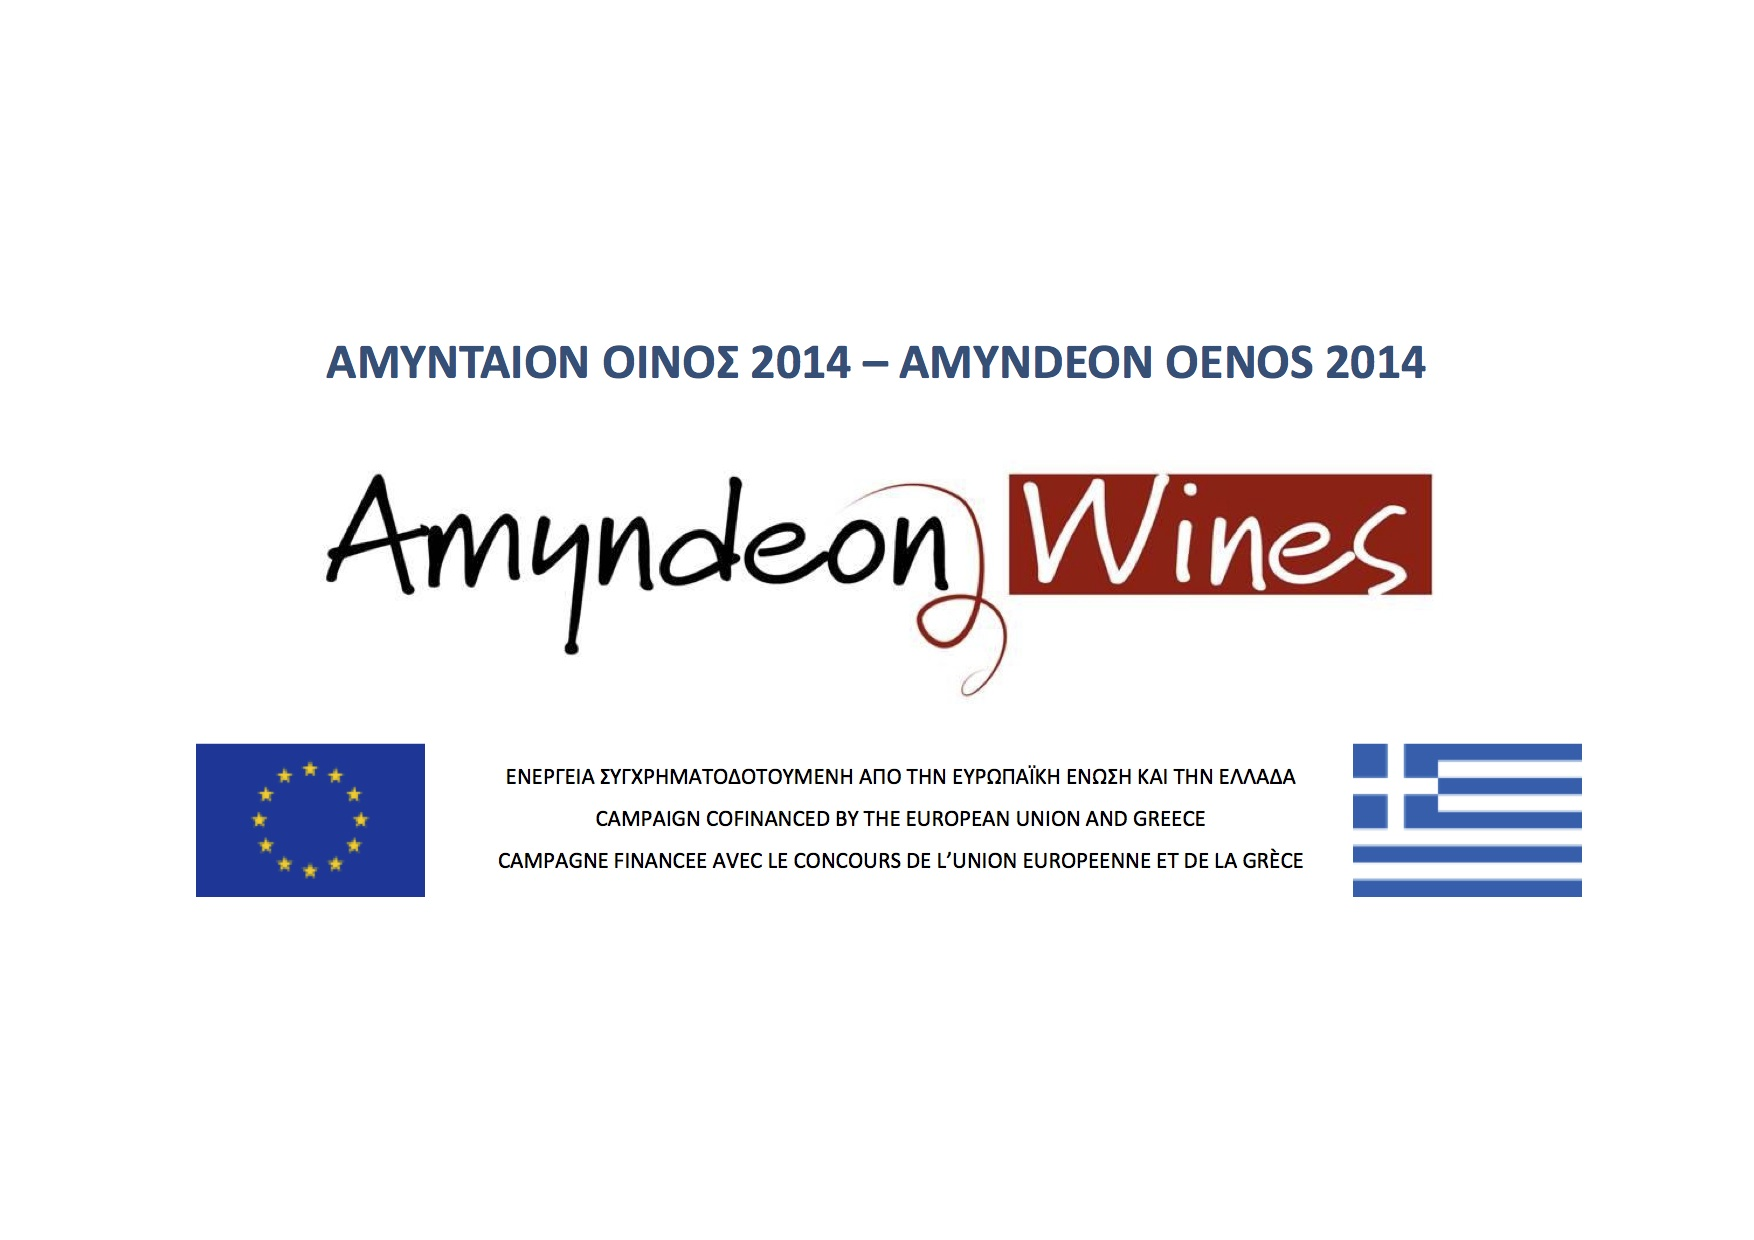 AMOIN_2014_LABEL_2